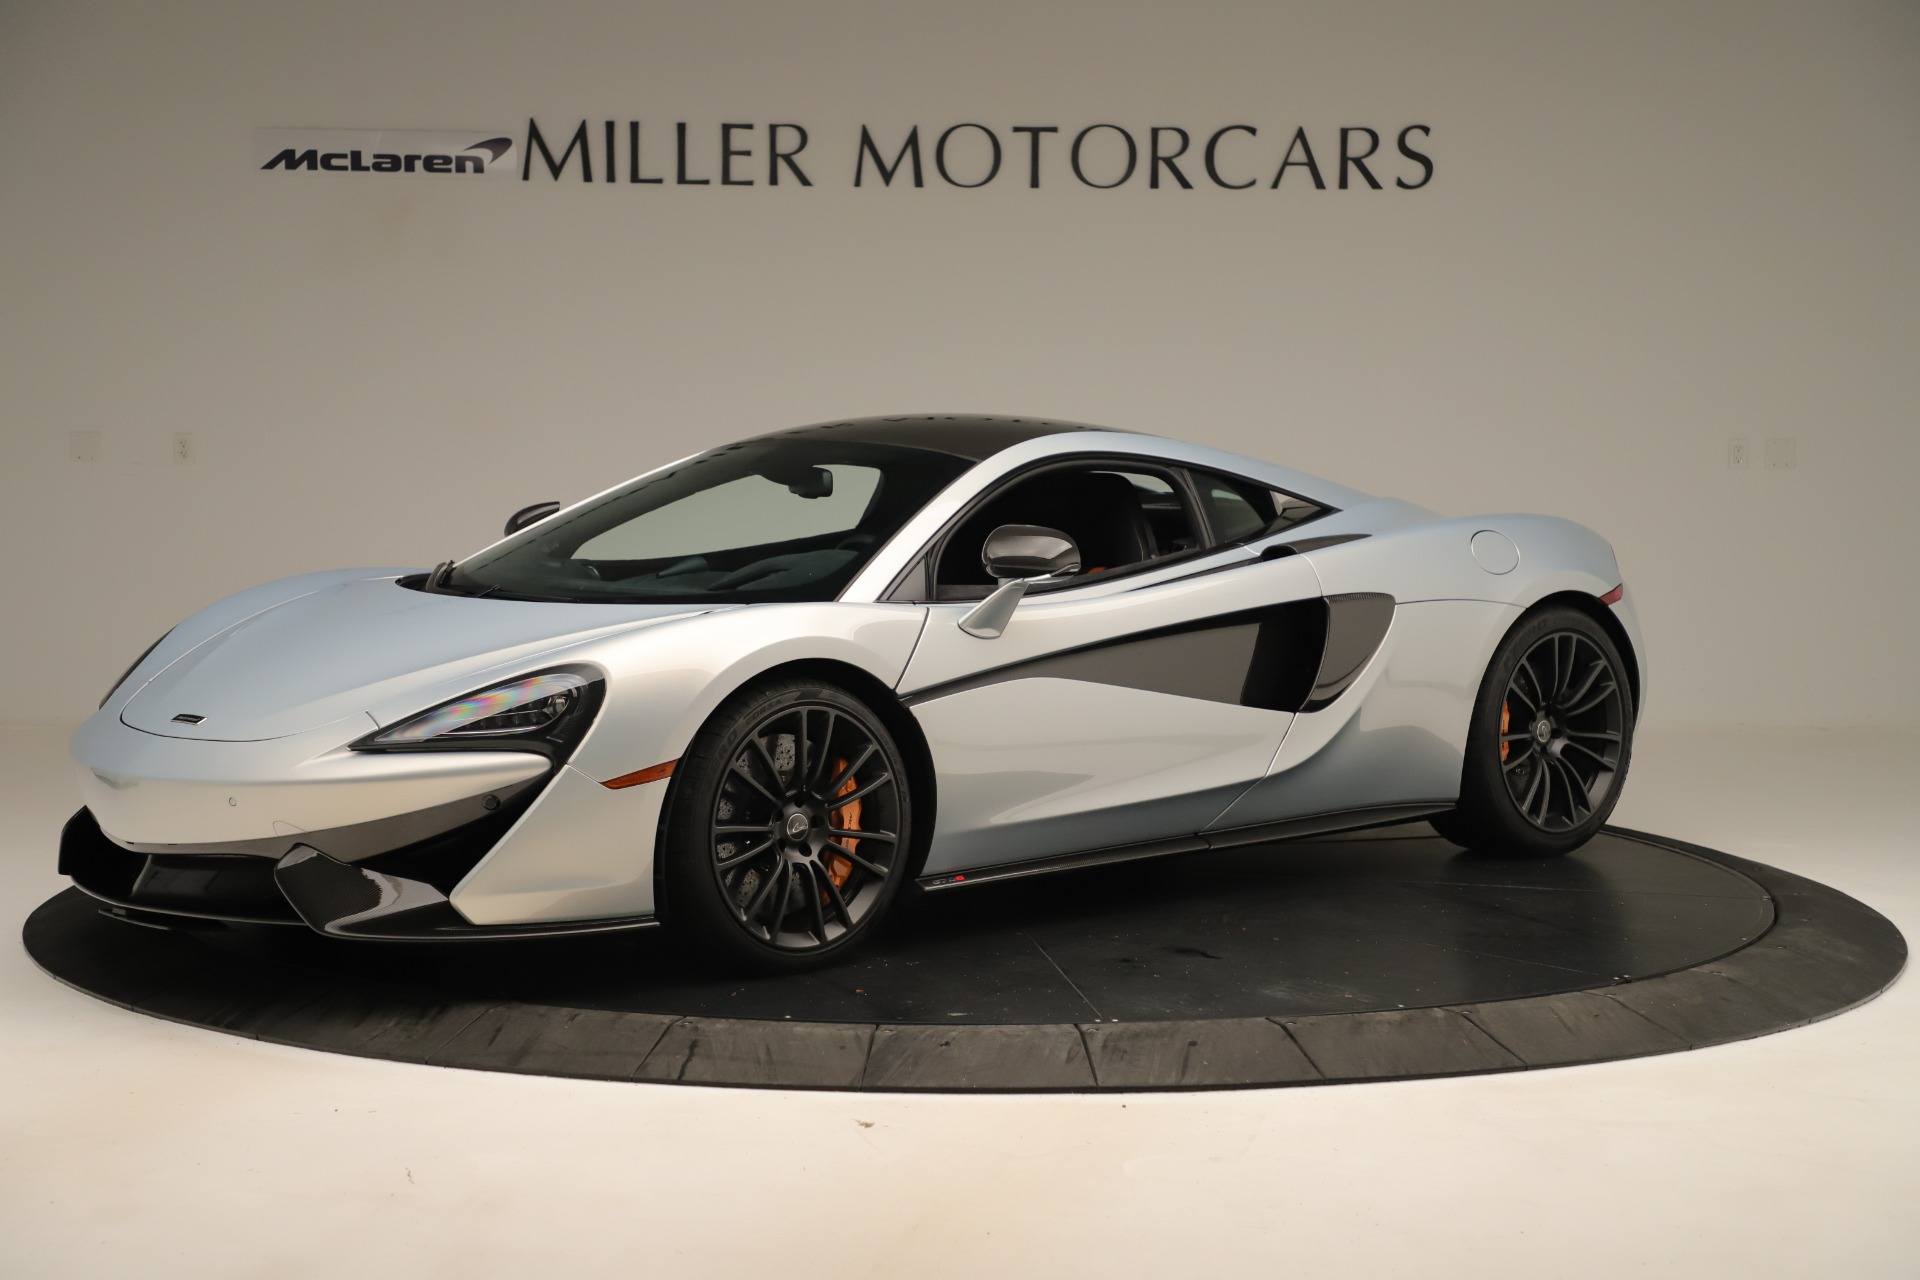 Used 2016 McLaren 570S Coupe for sale $151,900 at McLaren Greenwich in Greenwich CT 06830 1